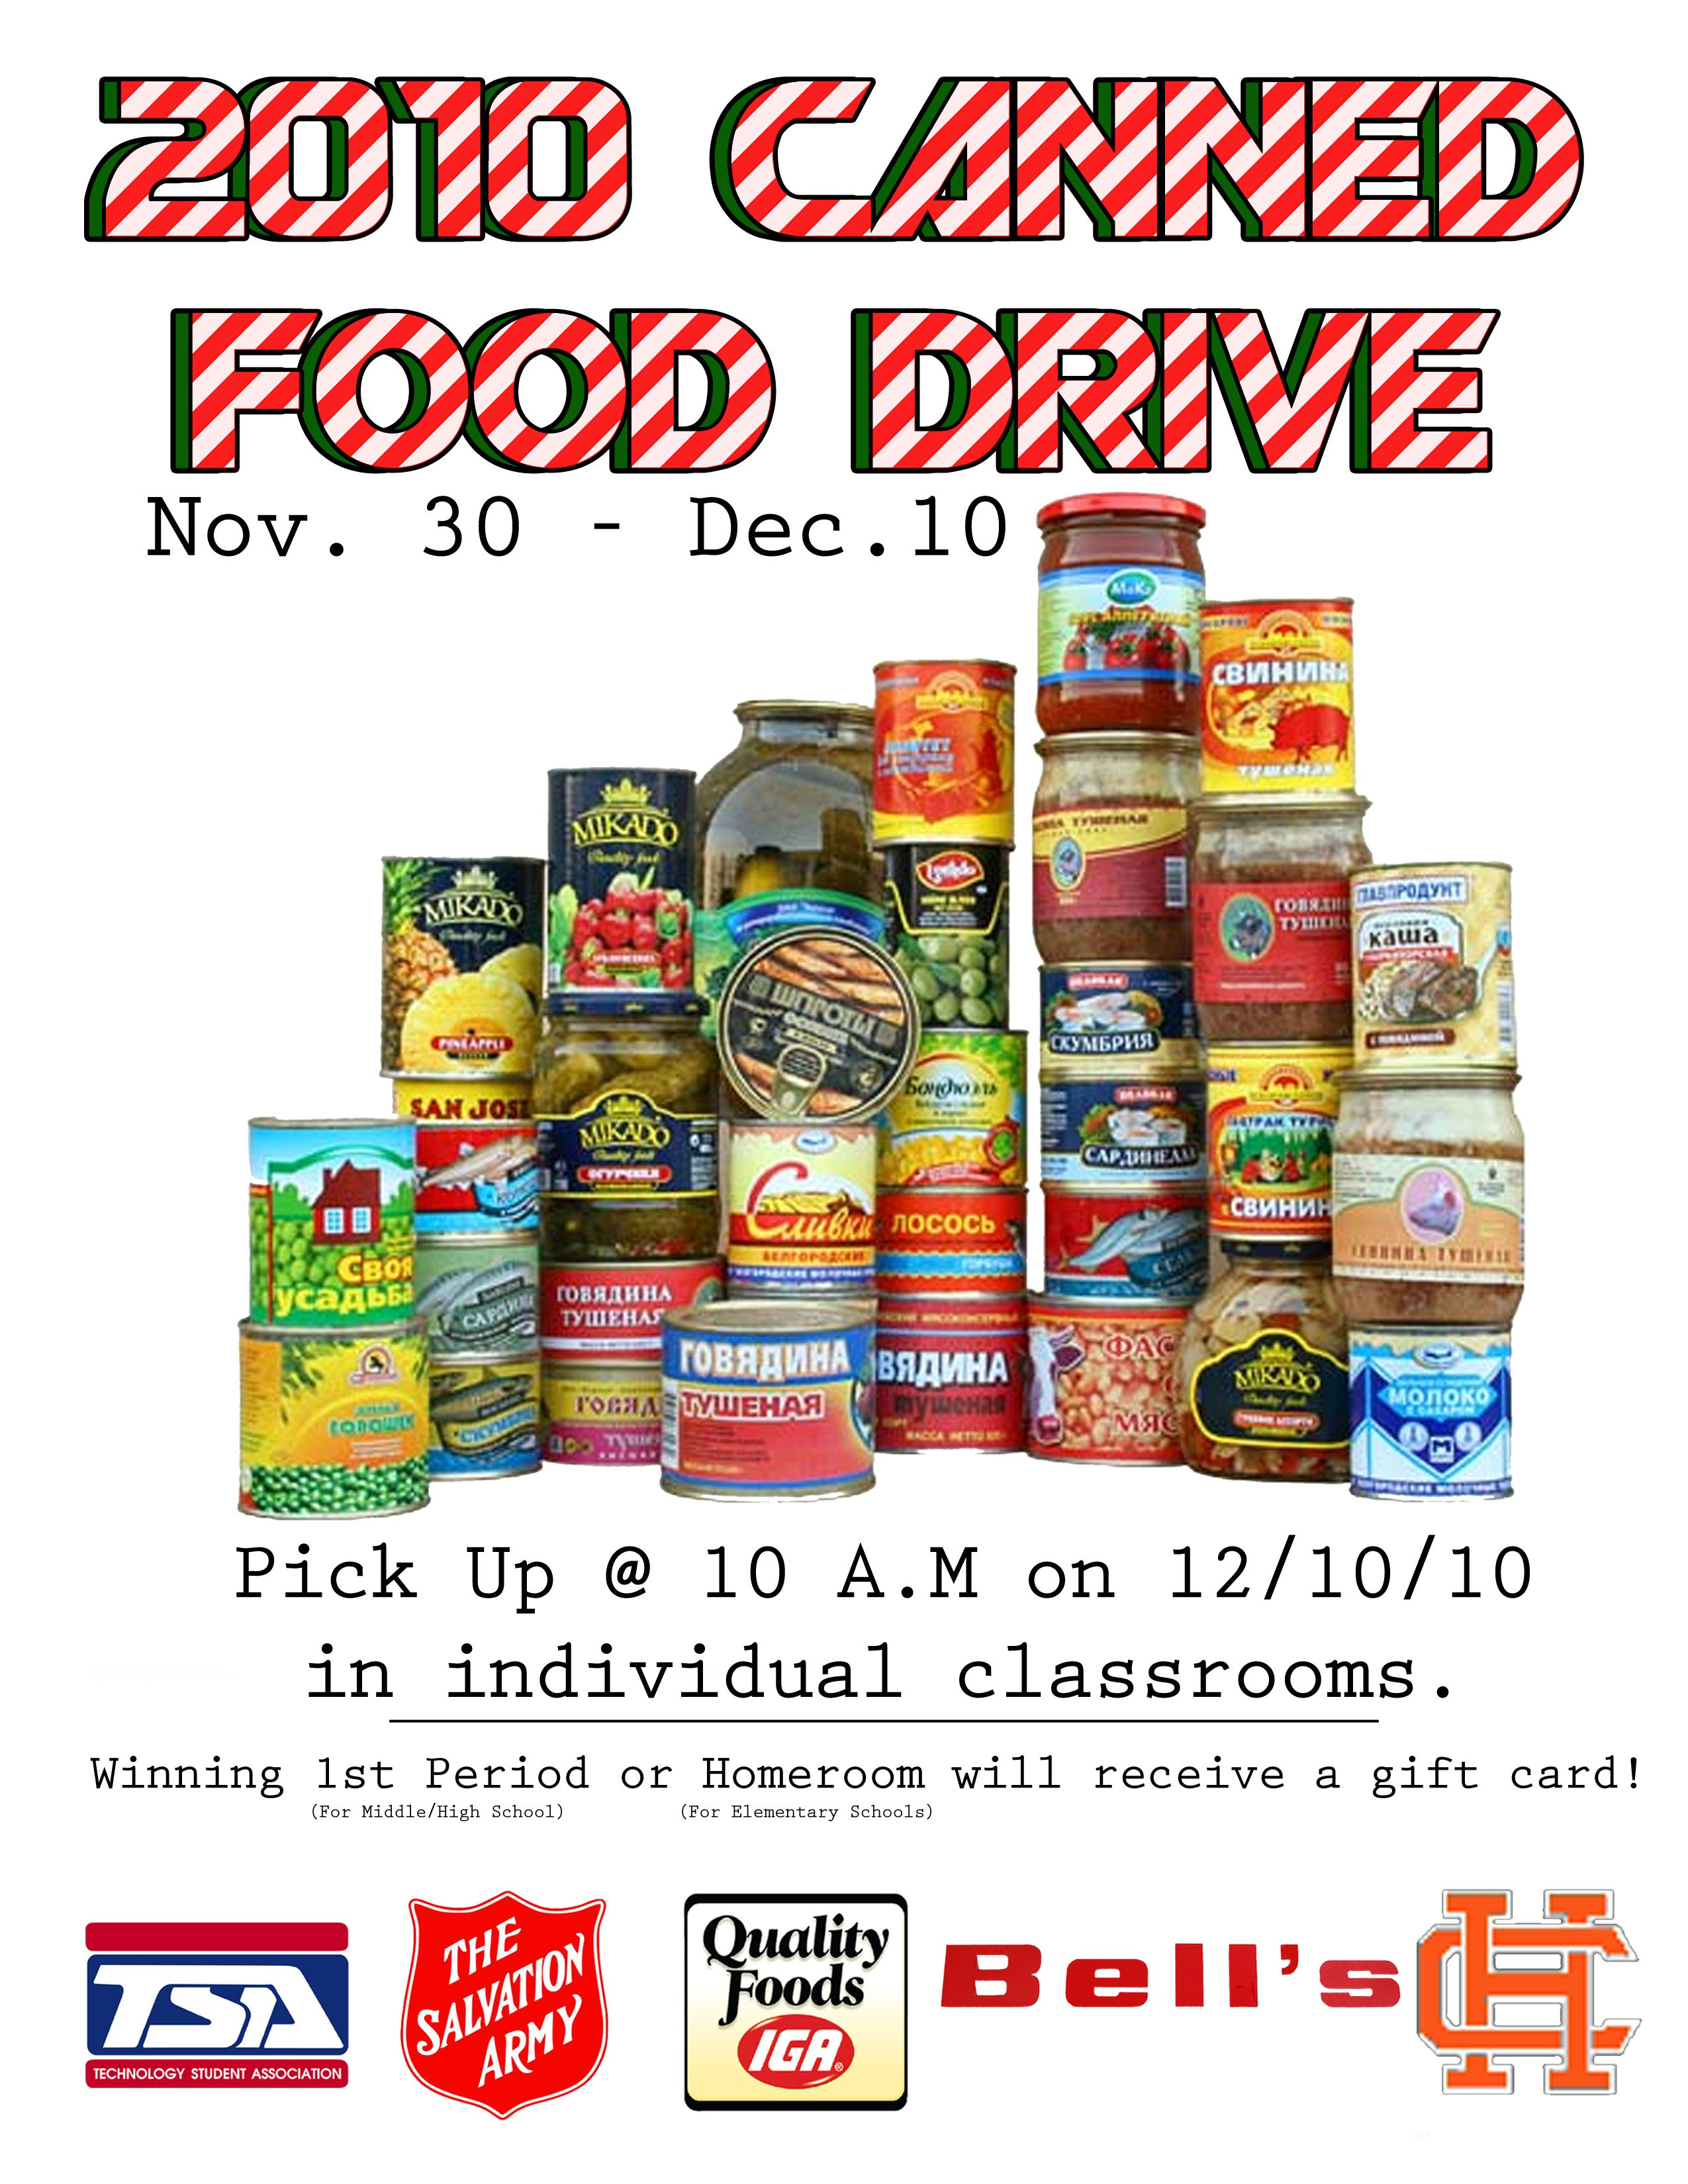 17 Best images about Food Drive on Pinterest   The flyer, Image ...